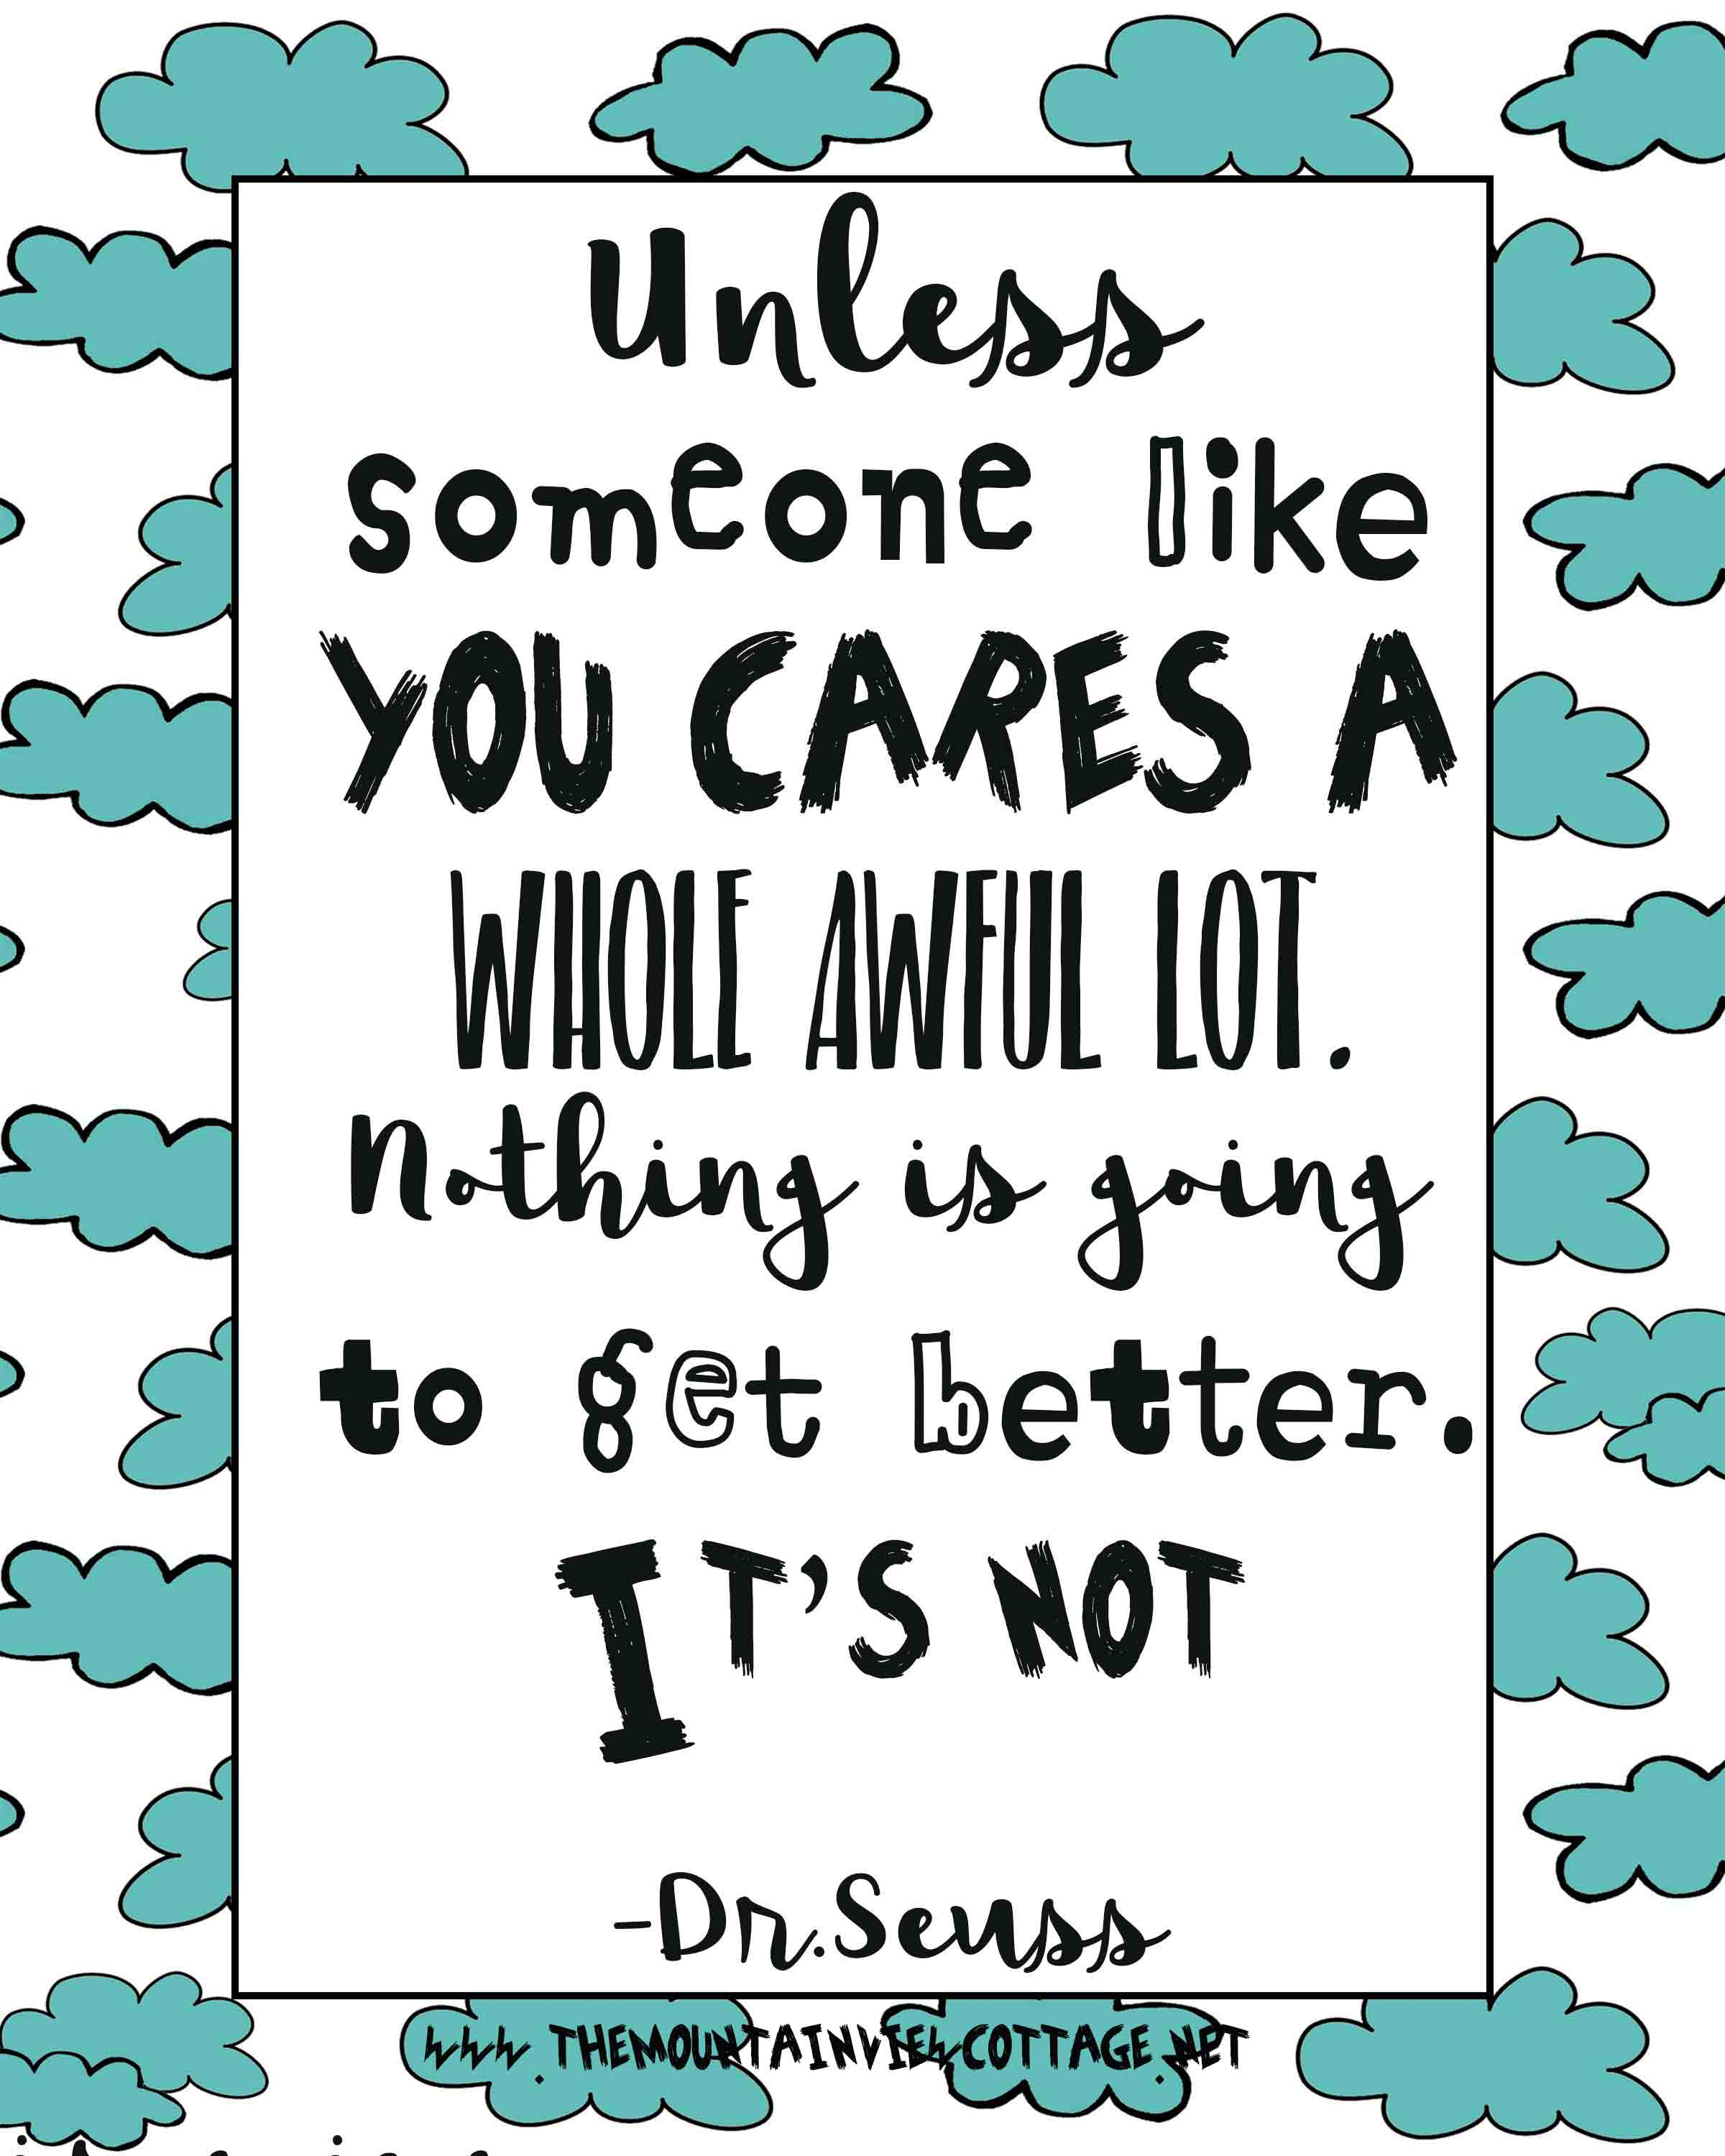 environment quotes-Dr.Seuss Quote weird-Dr Seuss quote about the future-activist quote